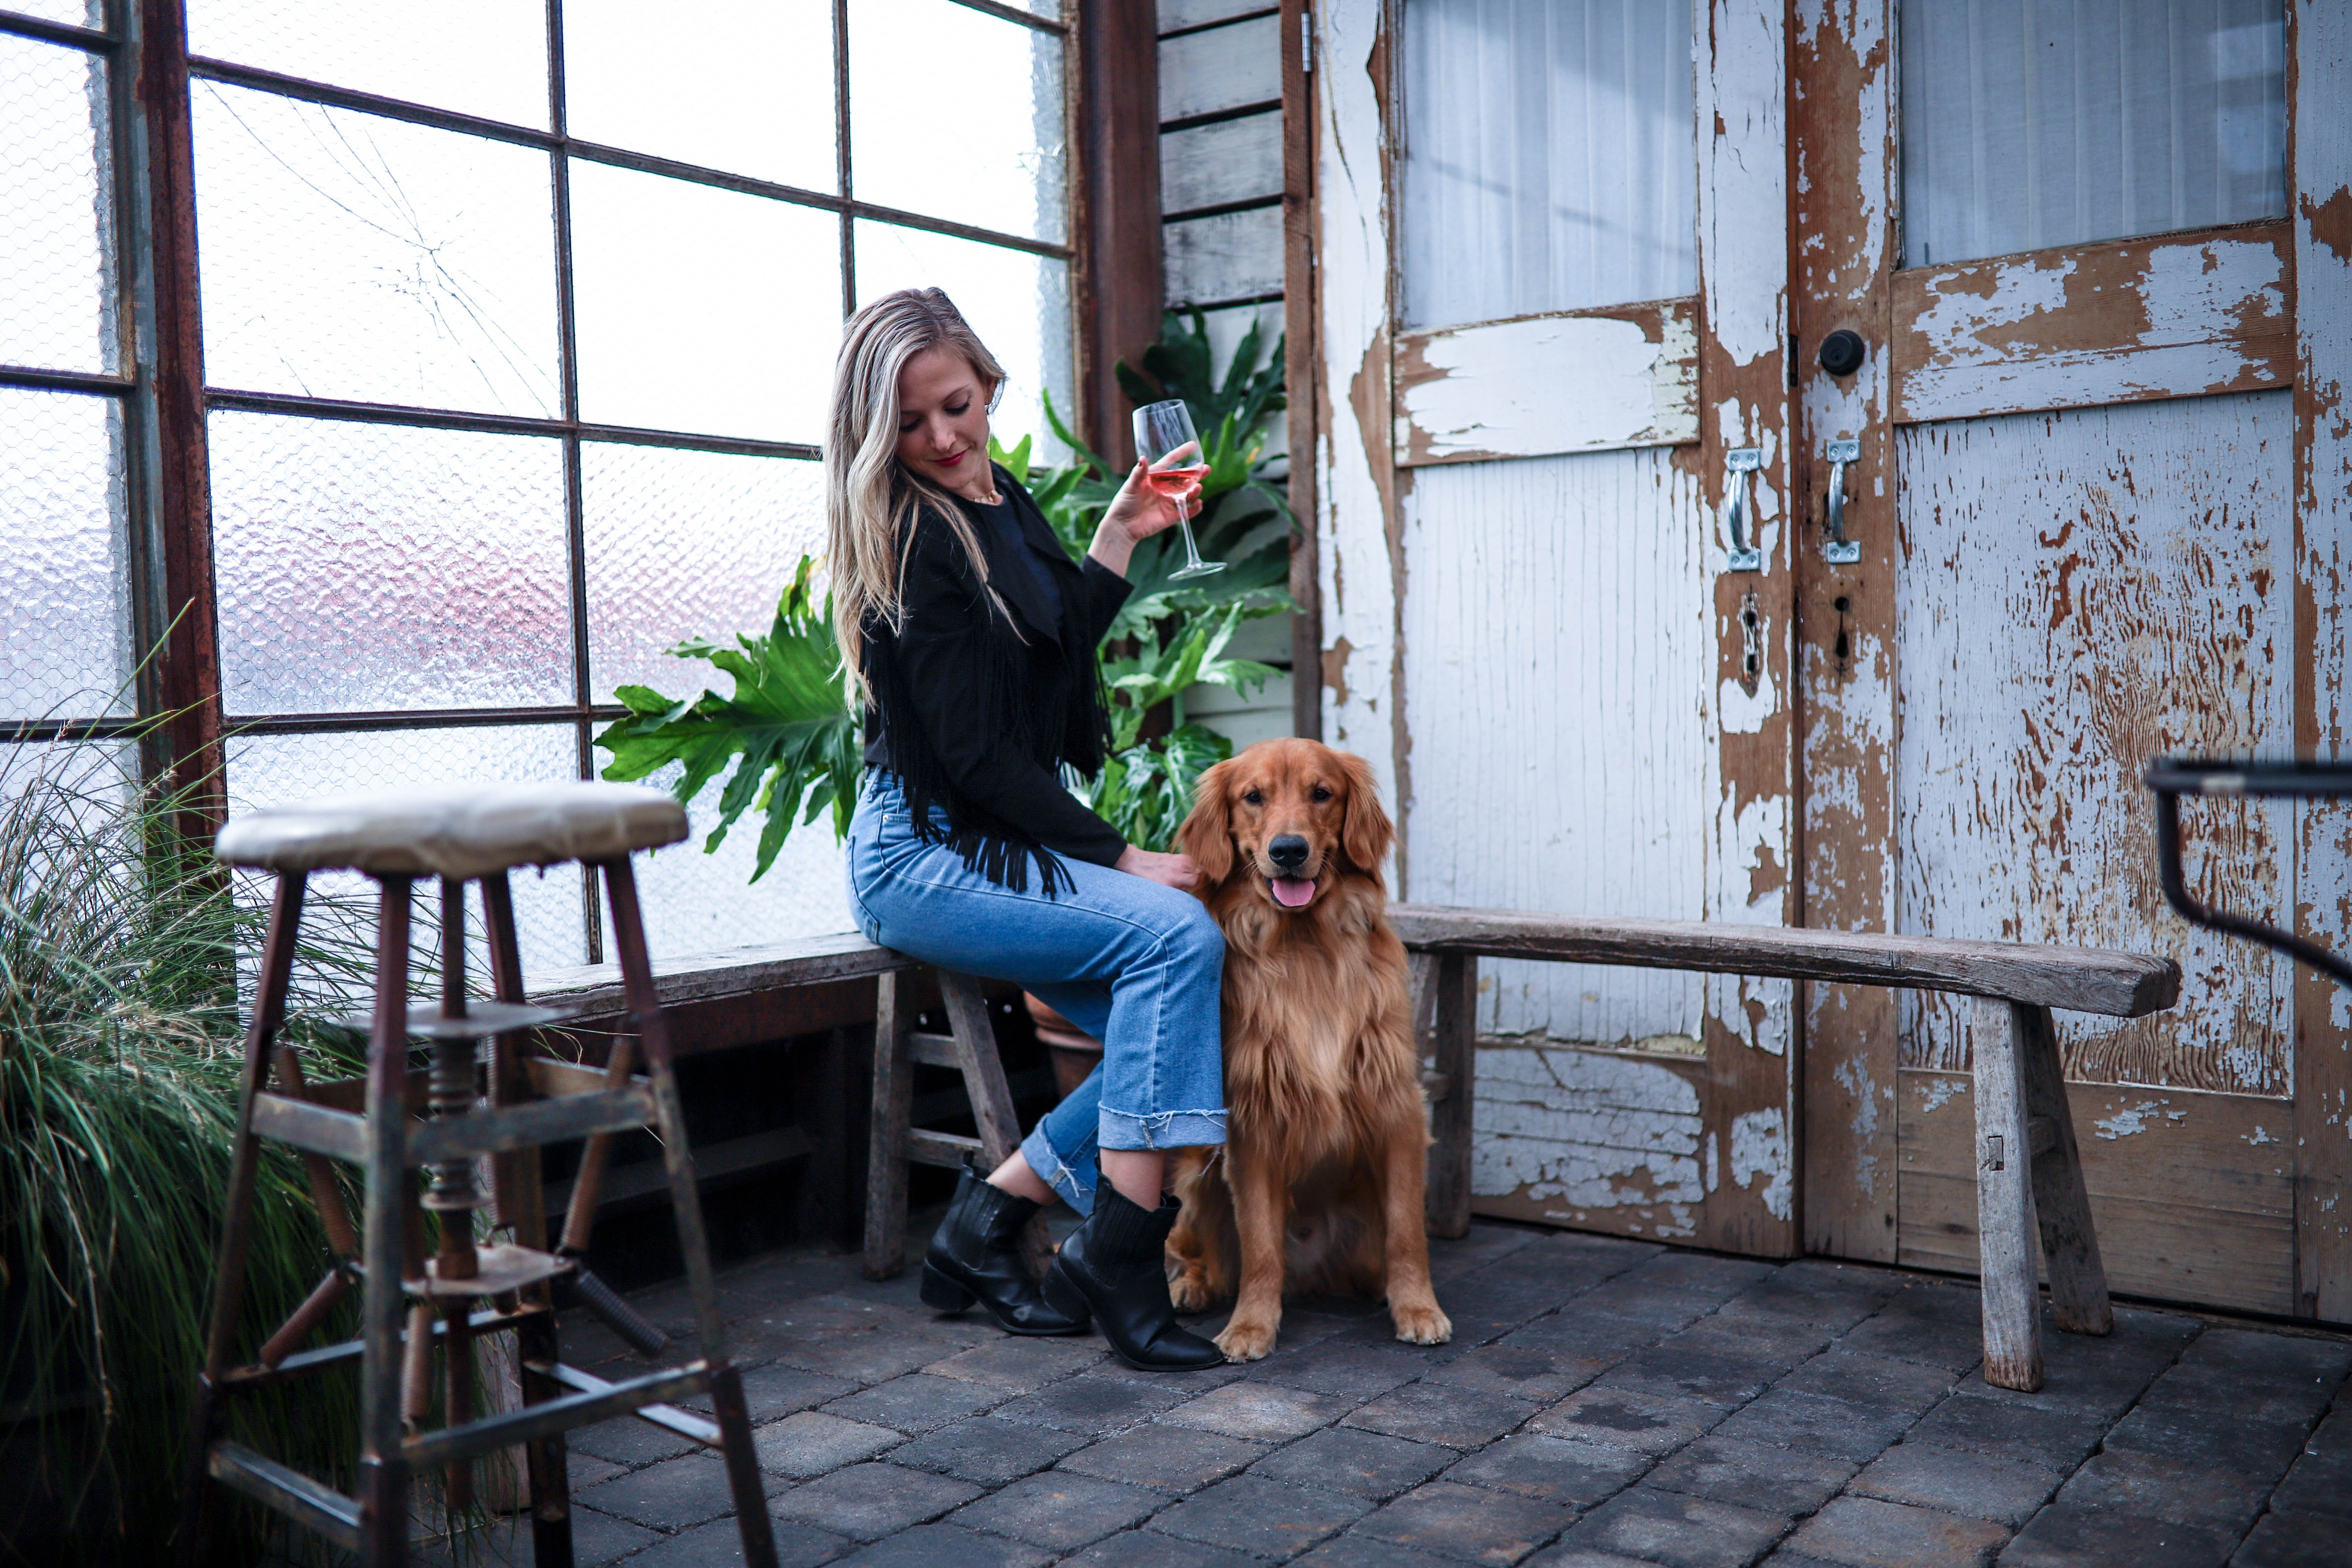 daily-wag-5-dog-friendly-bars-in-tampa-your-pup-should-visit-hero-image